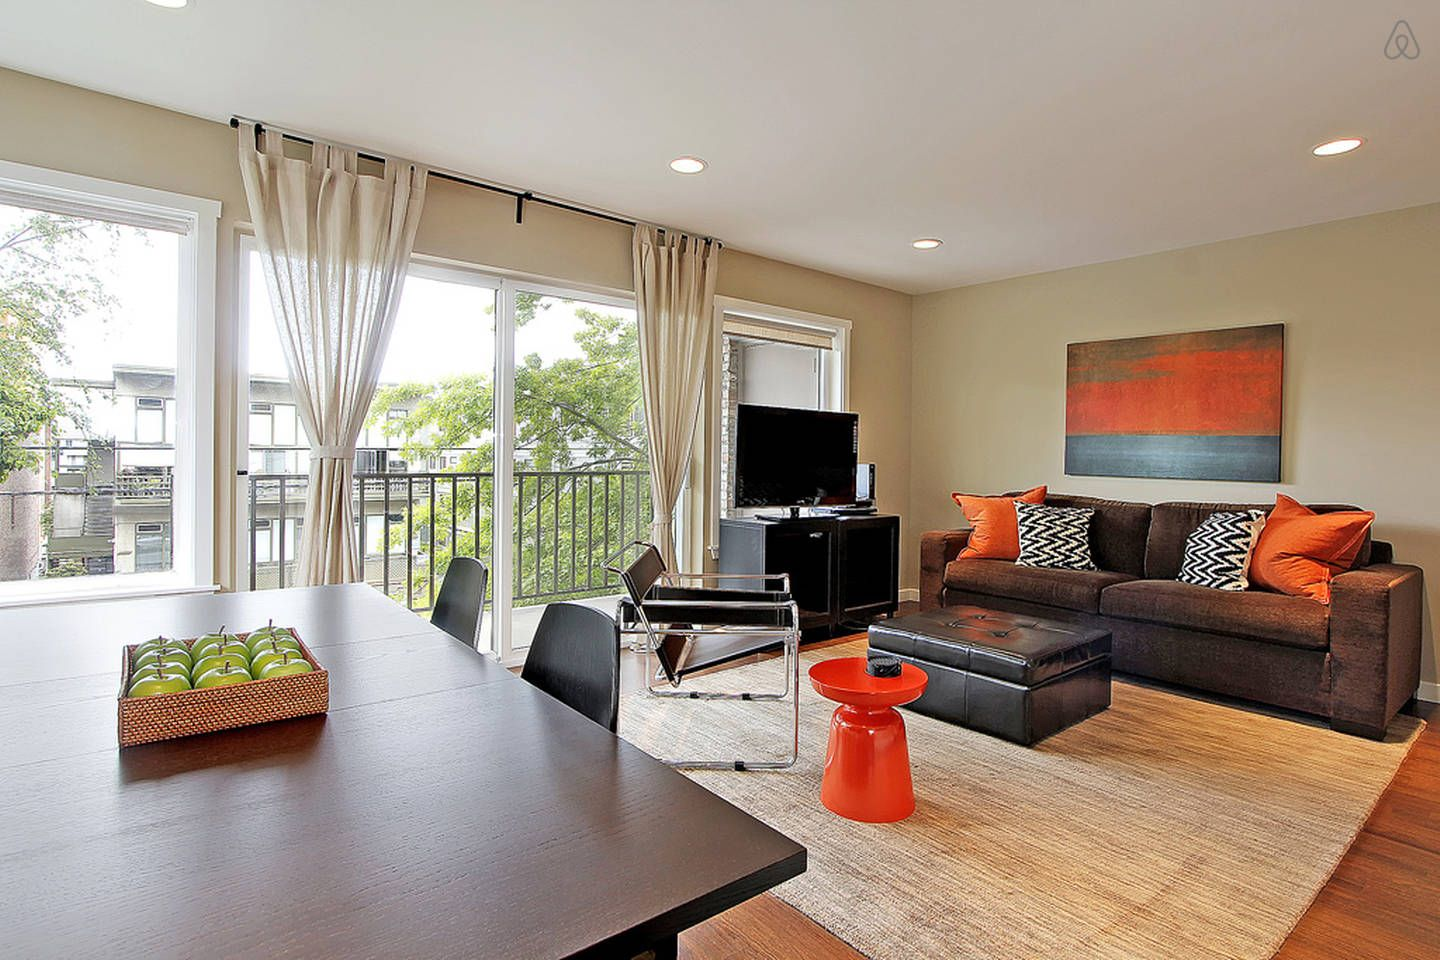 New LUXURIOUS Apt,Great Location!!! vacation rental in